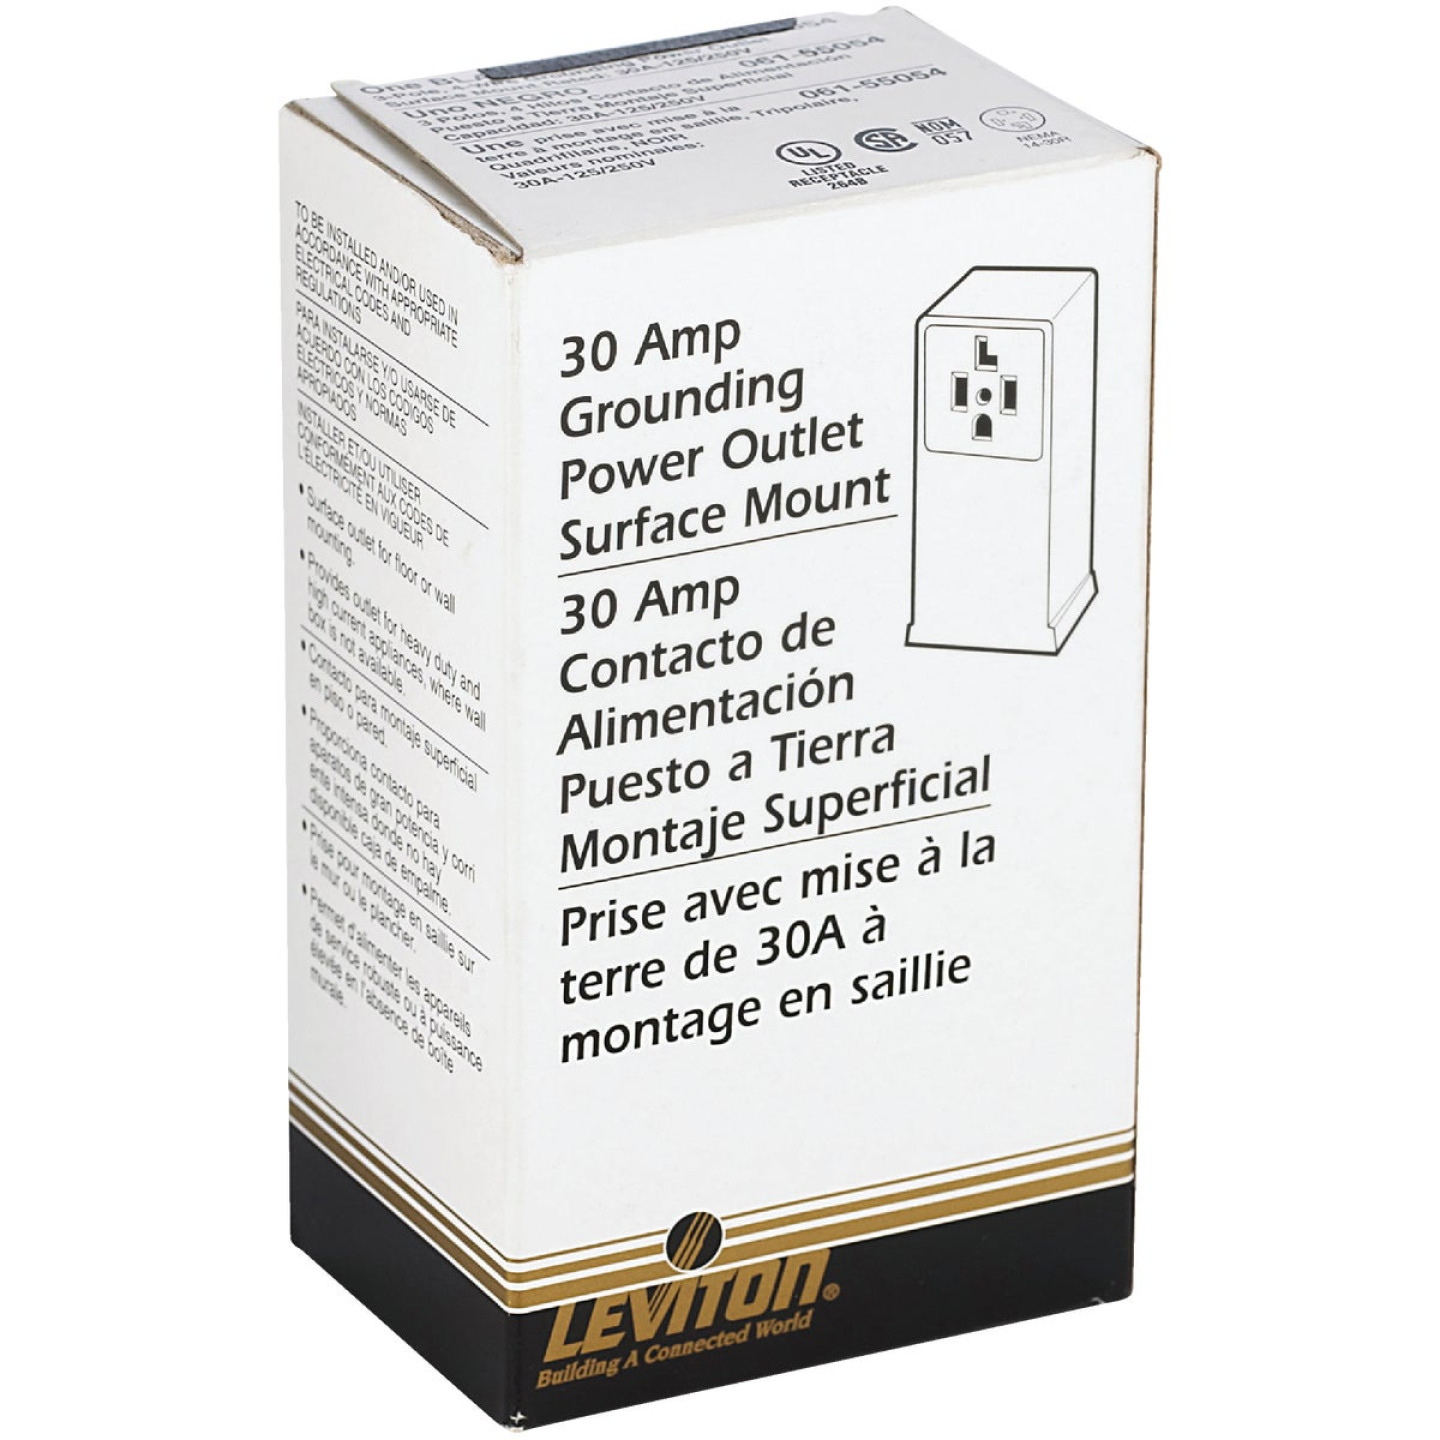 Leviton 30A Surface Mount Black 14-30R 4-Wire Dryer Power Outlet Image 3